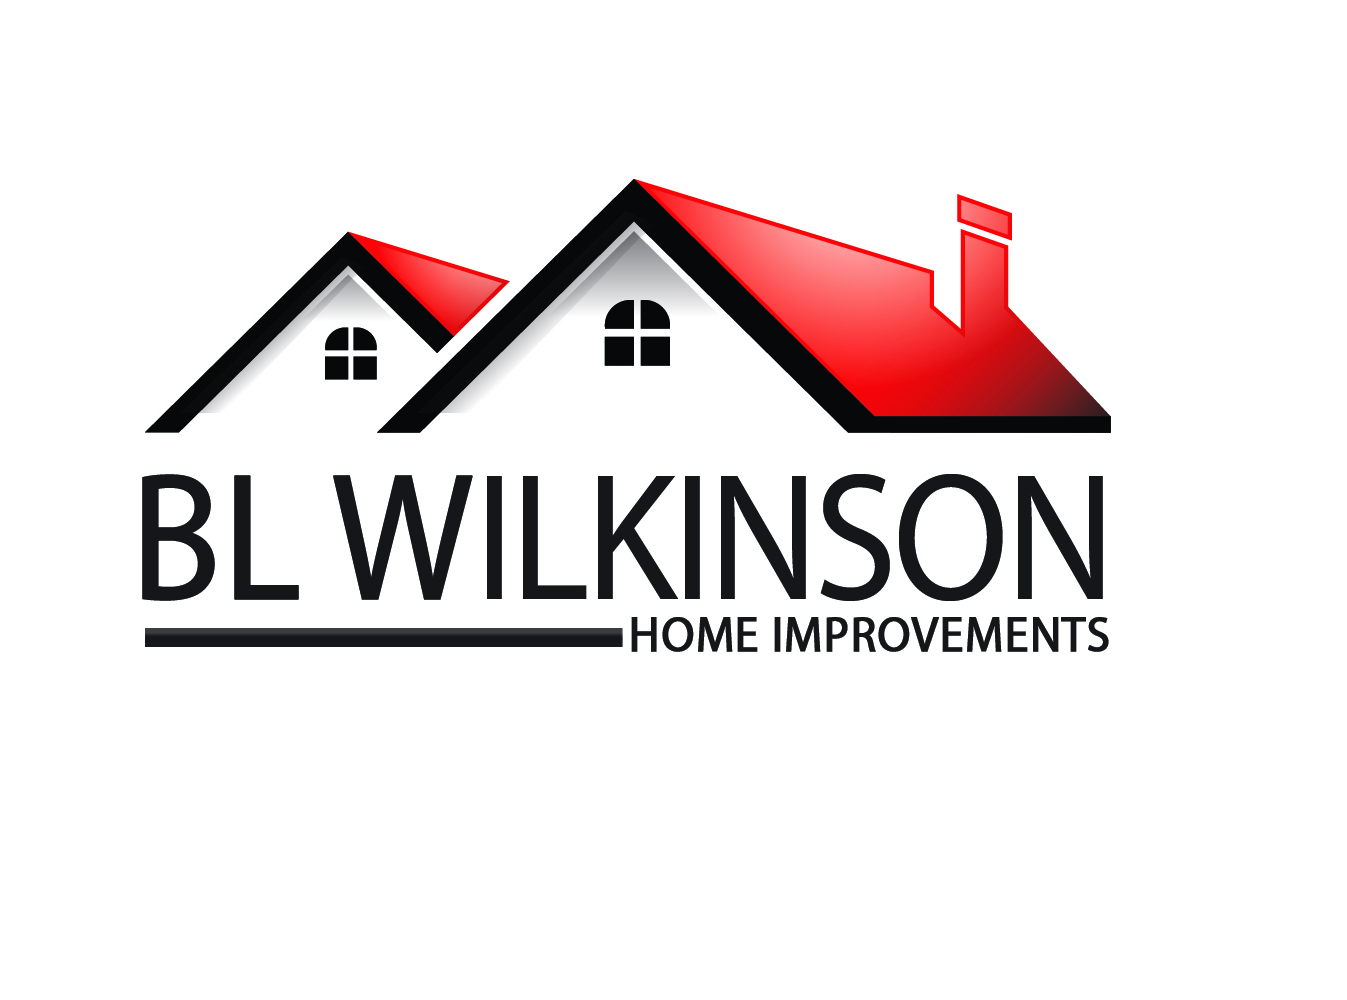 Home Improvement Company Logo